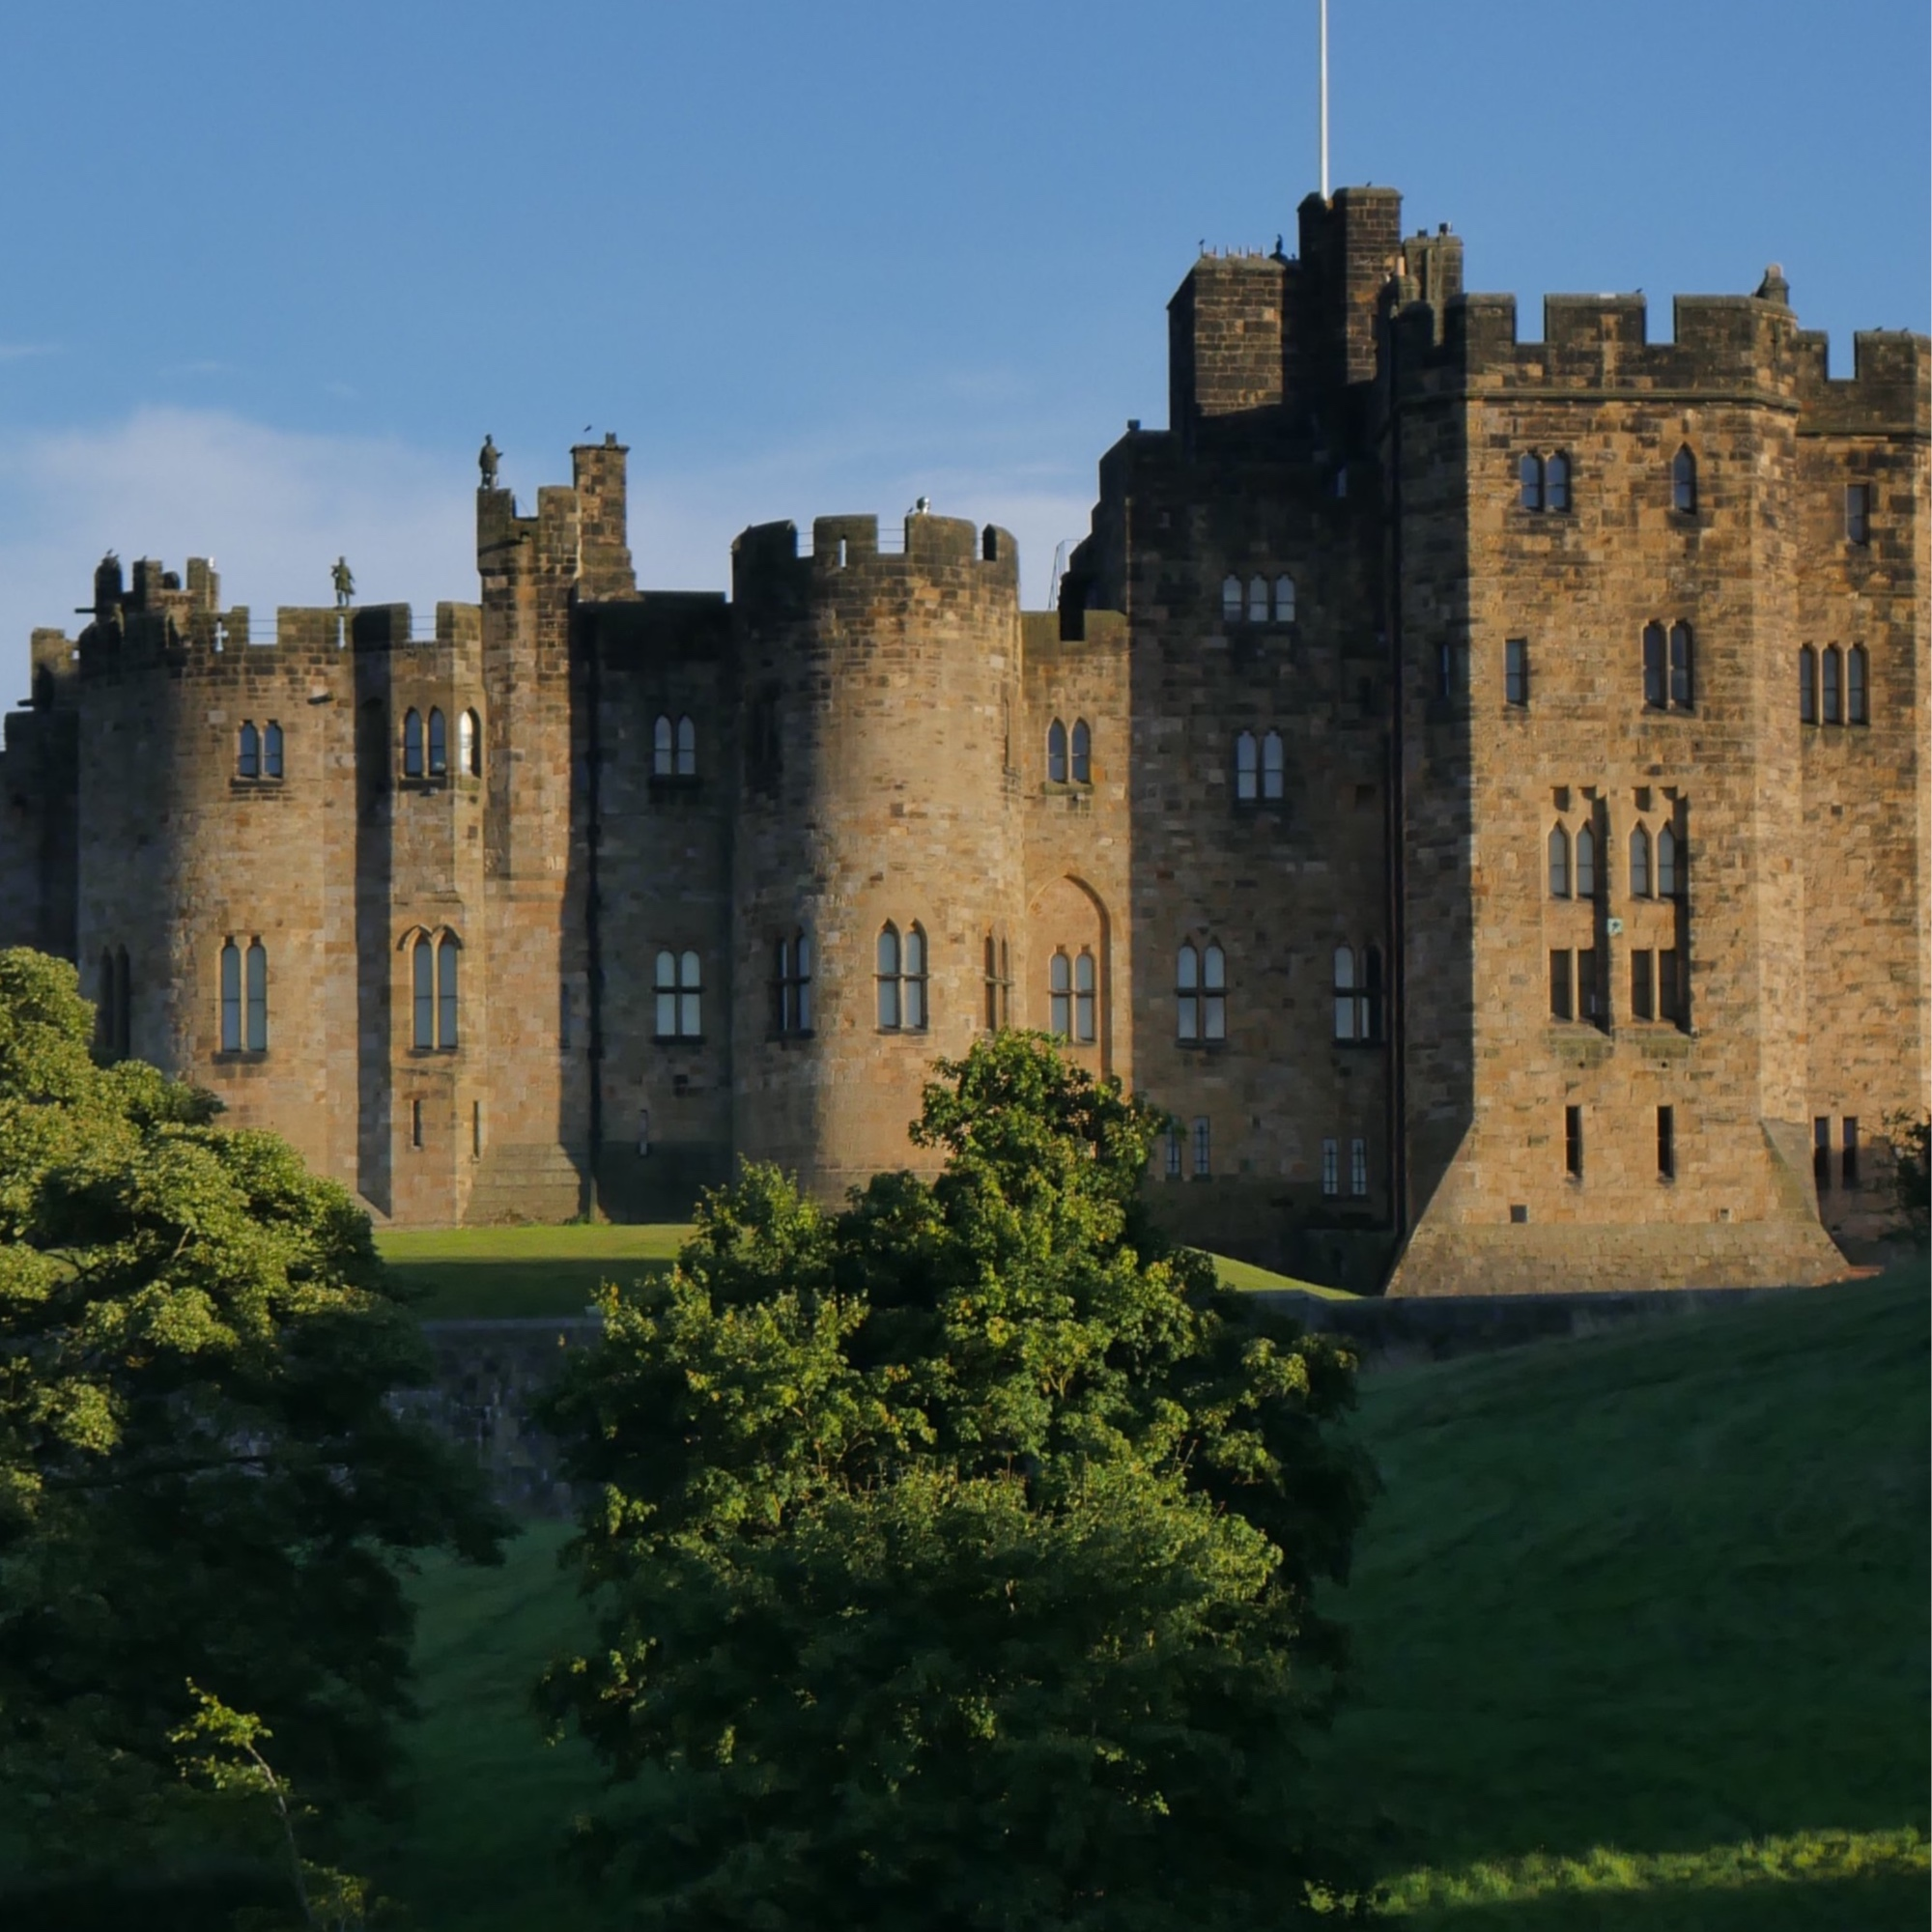 Alnwick Castle (6 miles) - Alnwick Castle is a castle and country house in Alnwick in the English county of Northumberland. It is the seat of His Grace The 12th Duke of Northumberland. Offering Harry Potter, dragon and knight themes activities for all to enjoy.